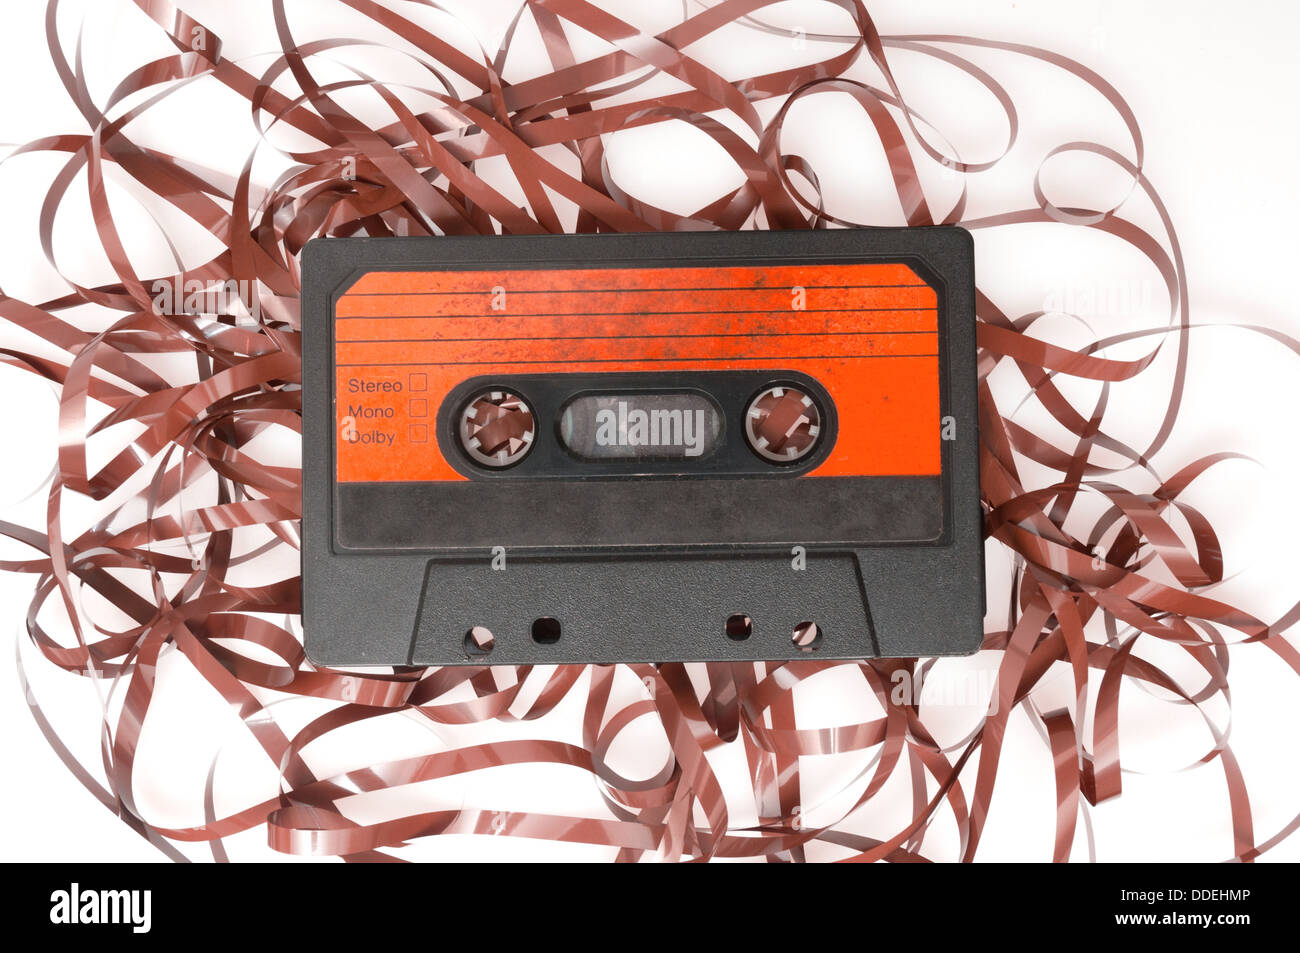 Retro Audio Cassette Tape With Pulled Out Tape on White Background - Stock Image